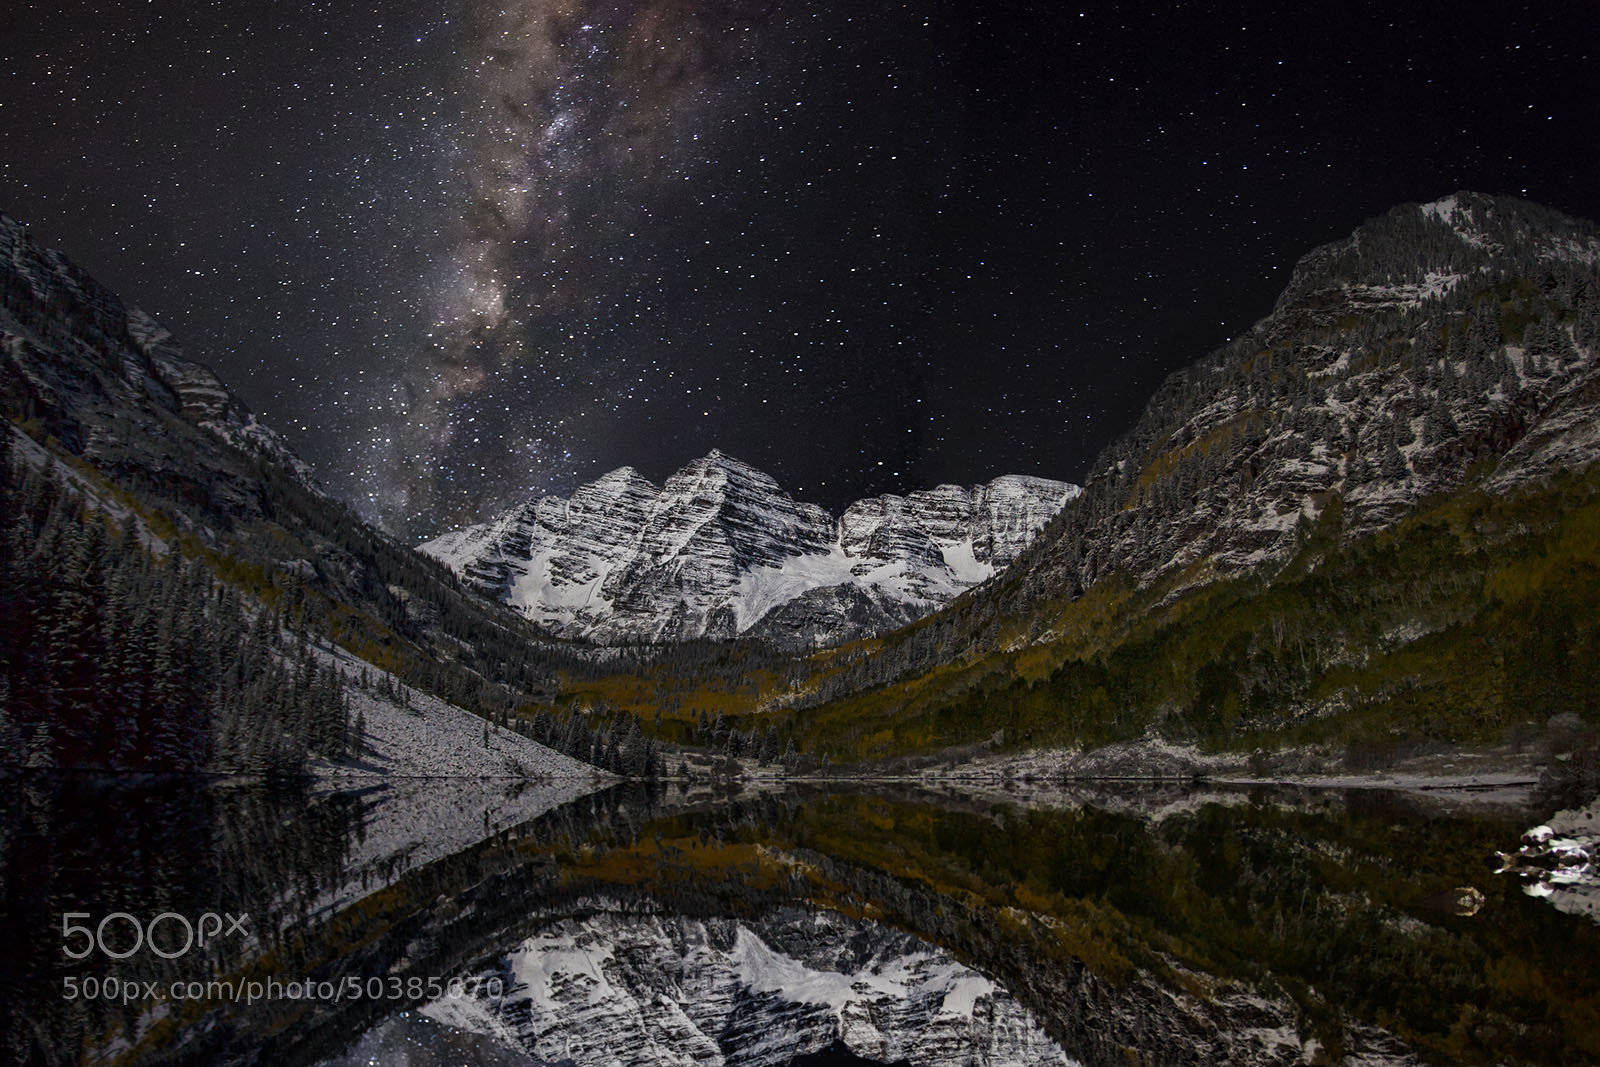 Photograph Maroon Bells at night by Brad McGinley on 500px